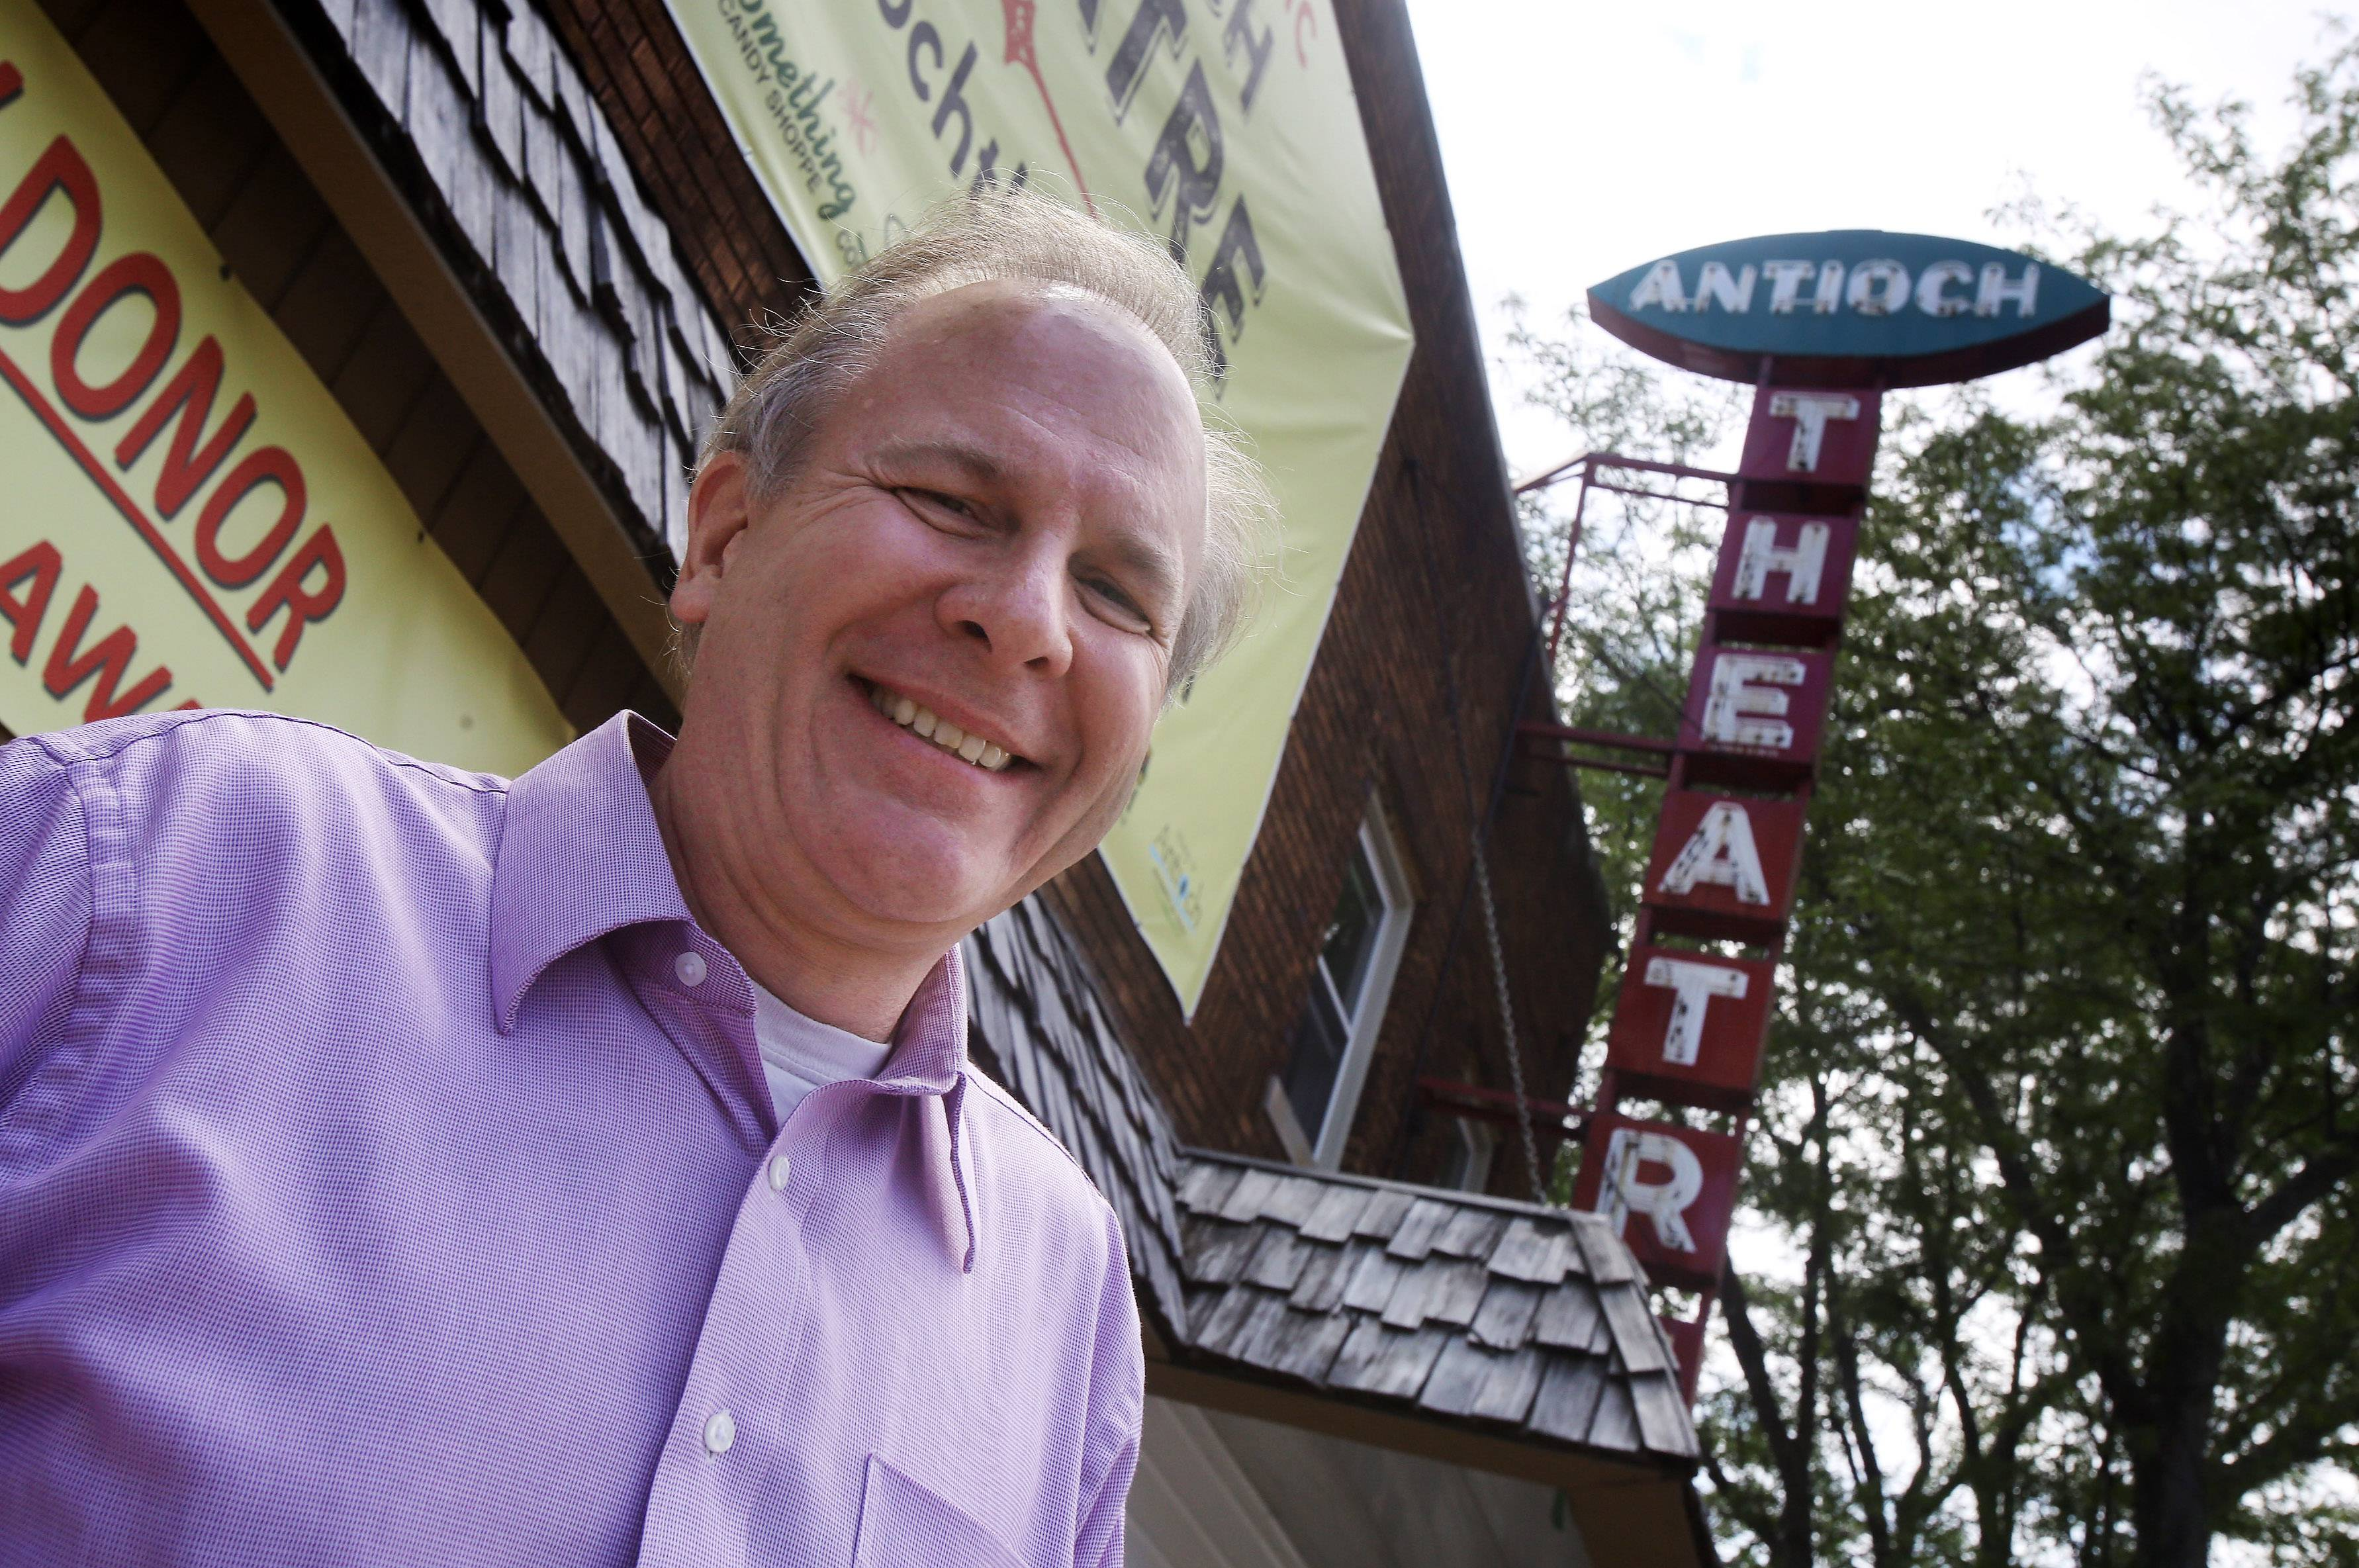 Tim Downey, owner of the 95-year-old Antioch Theater, is trying to save the historic movie house by raising $42,000 for digital film equipment and building renovations by July 31.